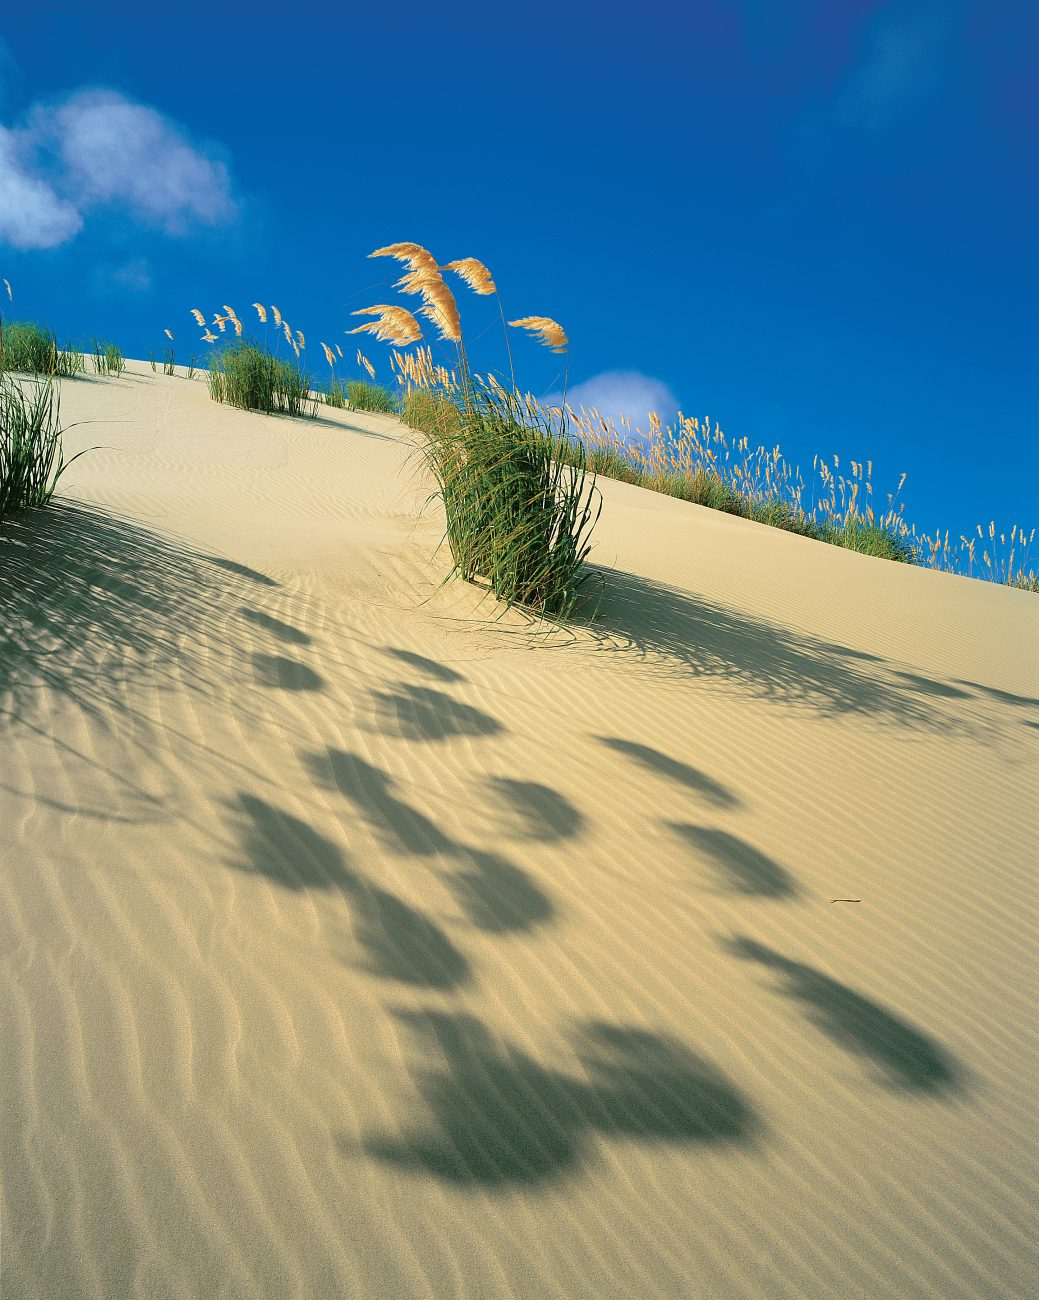 For dunes to stay bare, they must be in a stat of flux, either being eroded or built up. Once they become stable, vegetation such as the feathery-flowered toetoe will take root, and the stabilisation process will thus be accelerated.